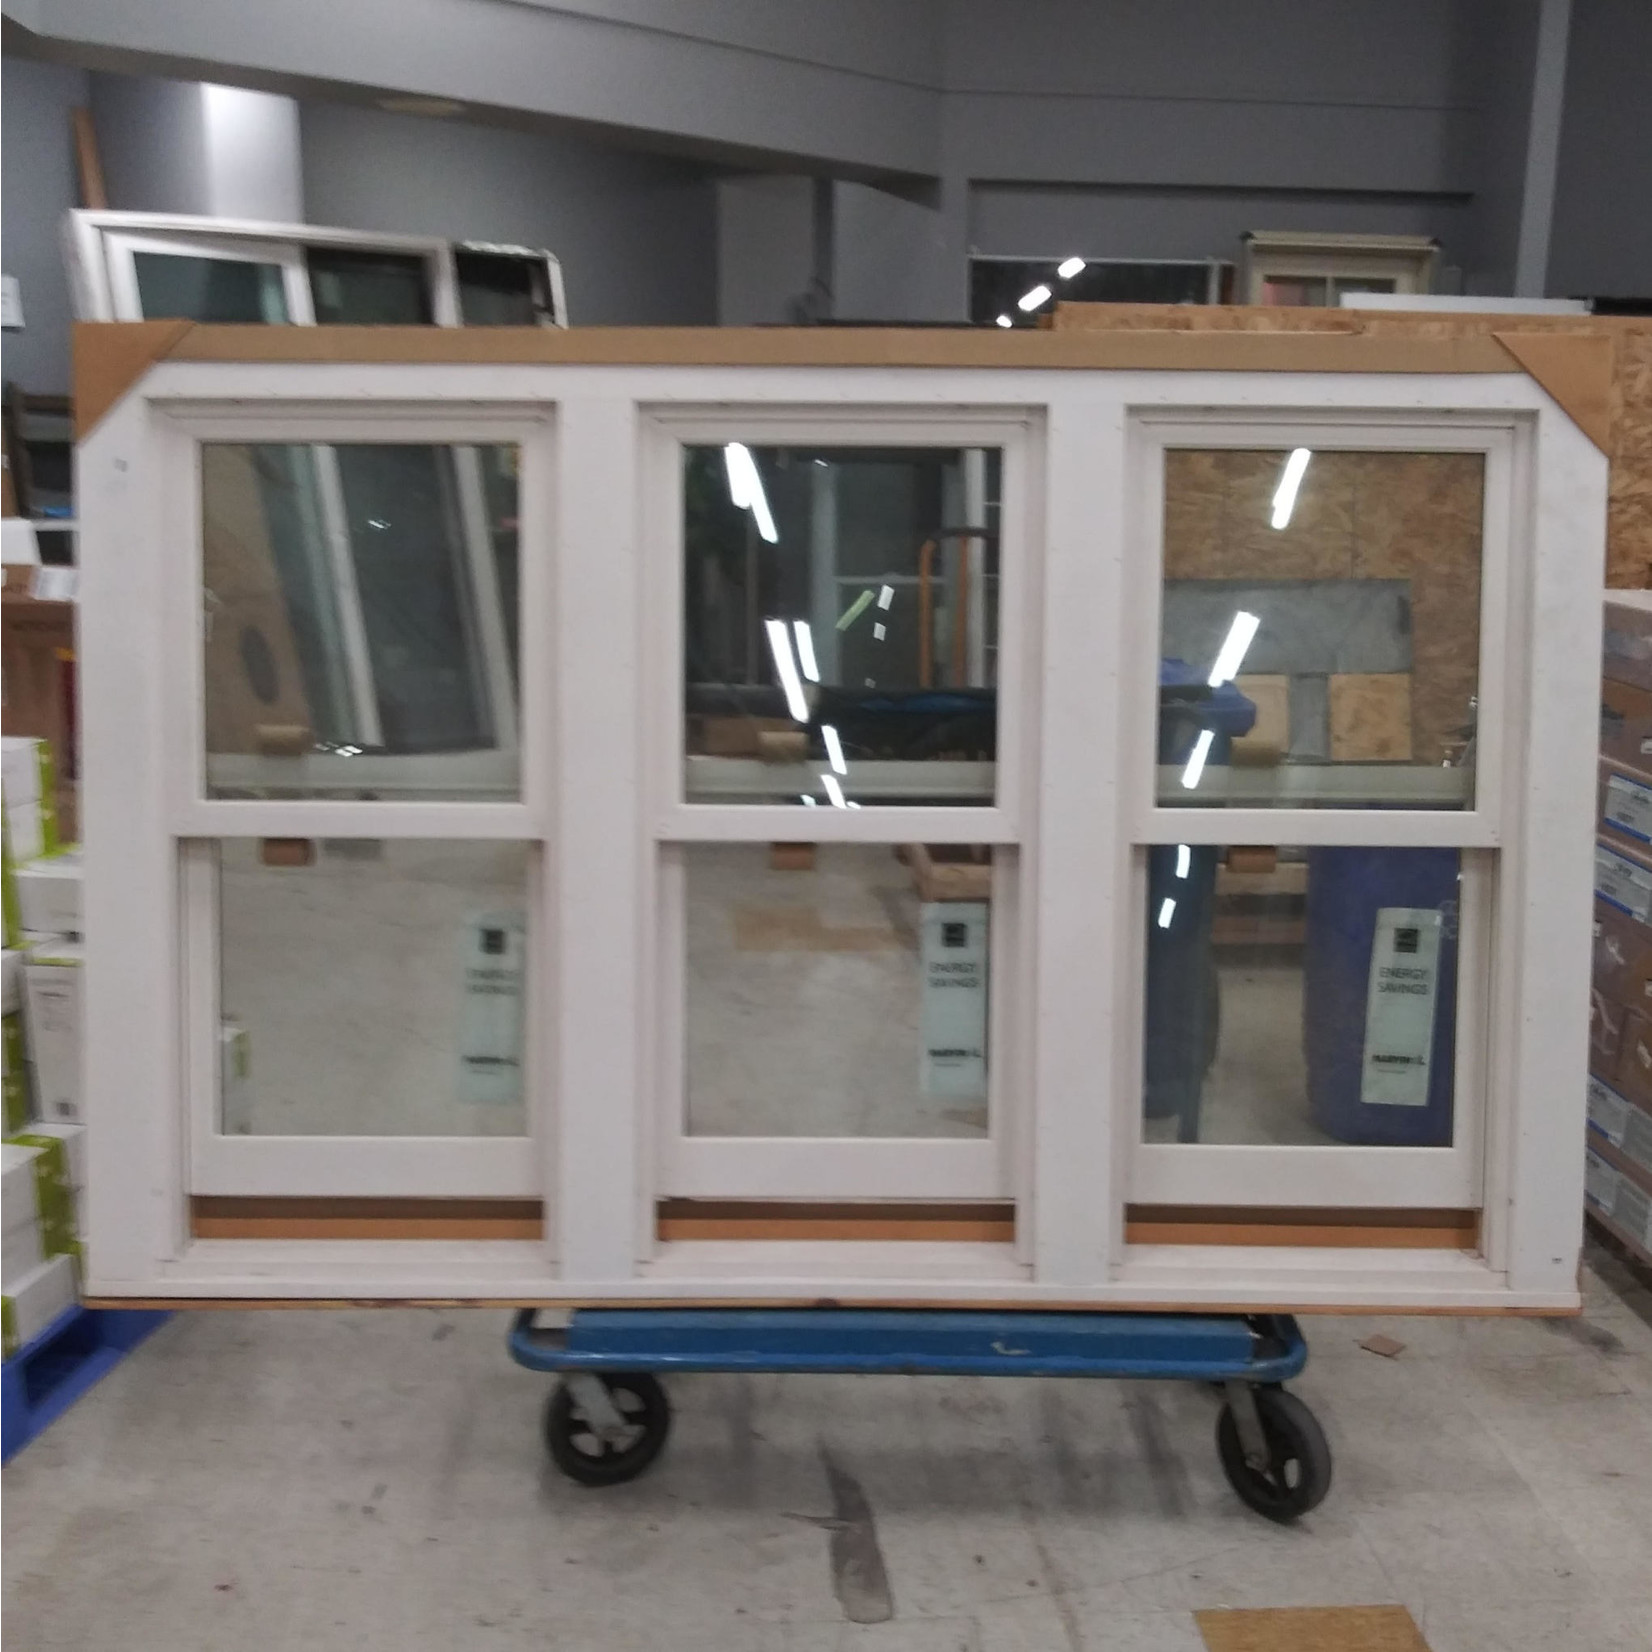 10173 Marvin Wood Frame Double Hung Exterior Window